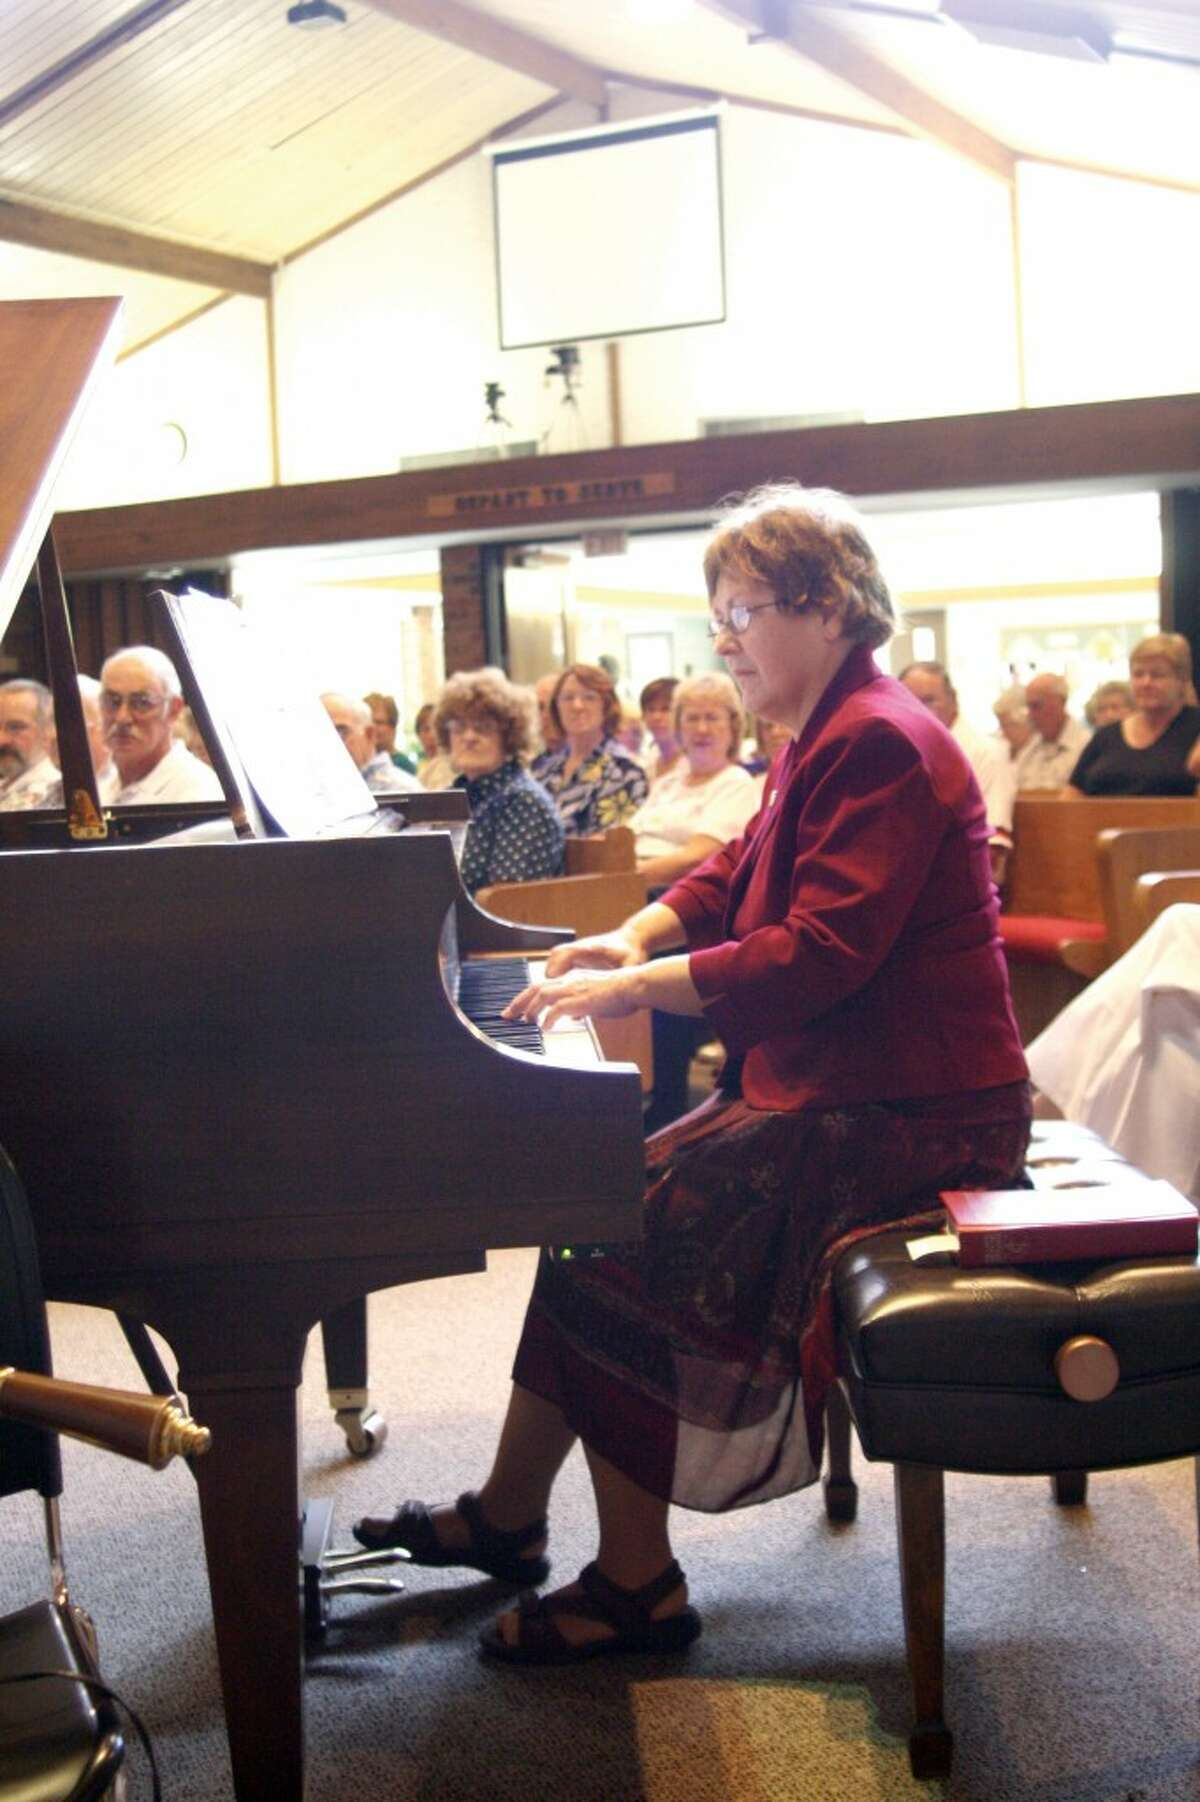 MUSICAL CELEBRATION: Lois Hinkins Stilber, a member of the Rev. George Bennard's family, plays a song for the audience at the Old Rugged Cross Centennial Celebration on Aug. 10. (Courtesy photo/Dianne Phelps)